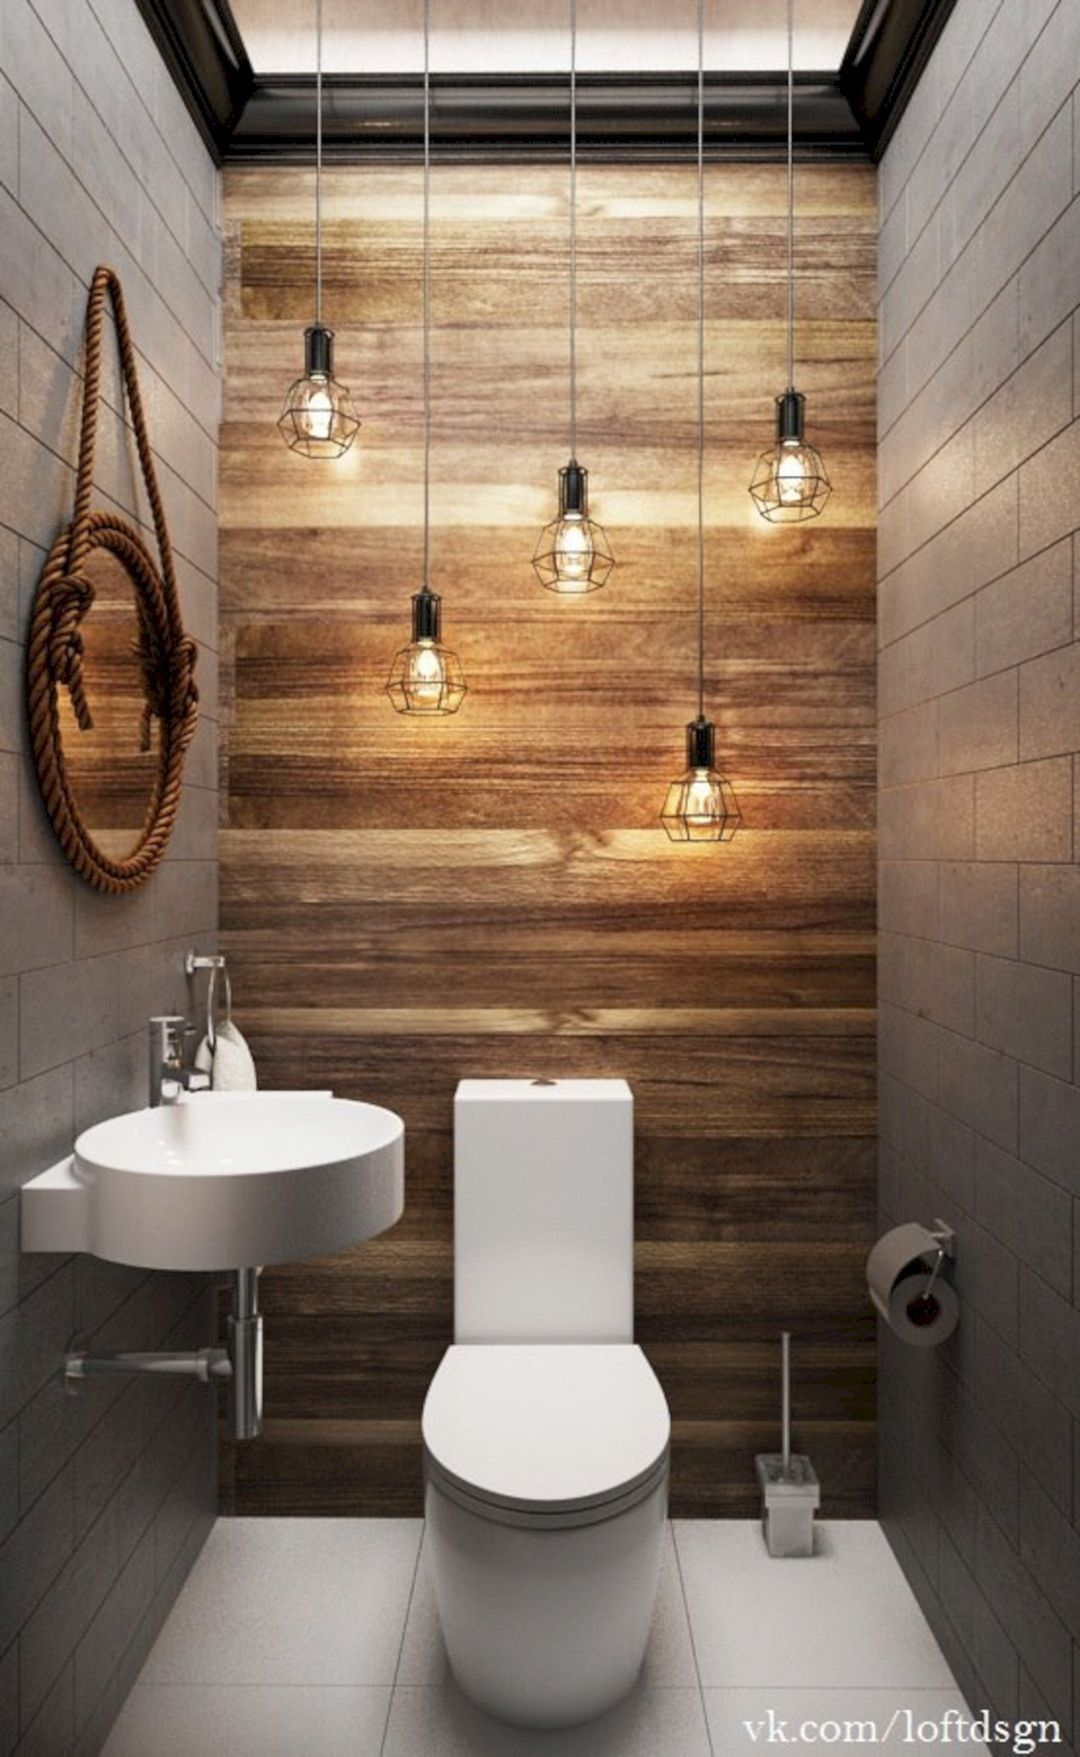 115 Extraordinary Small Bathroom Designs For Small Space 0104